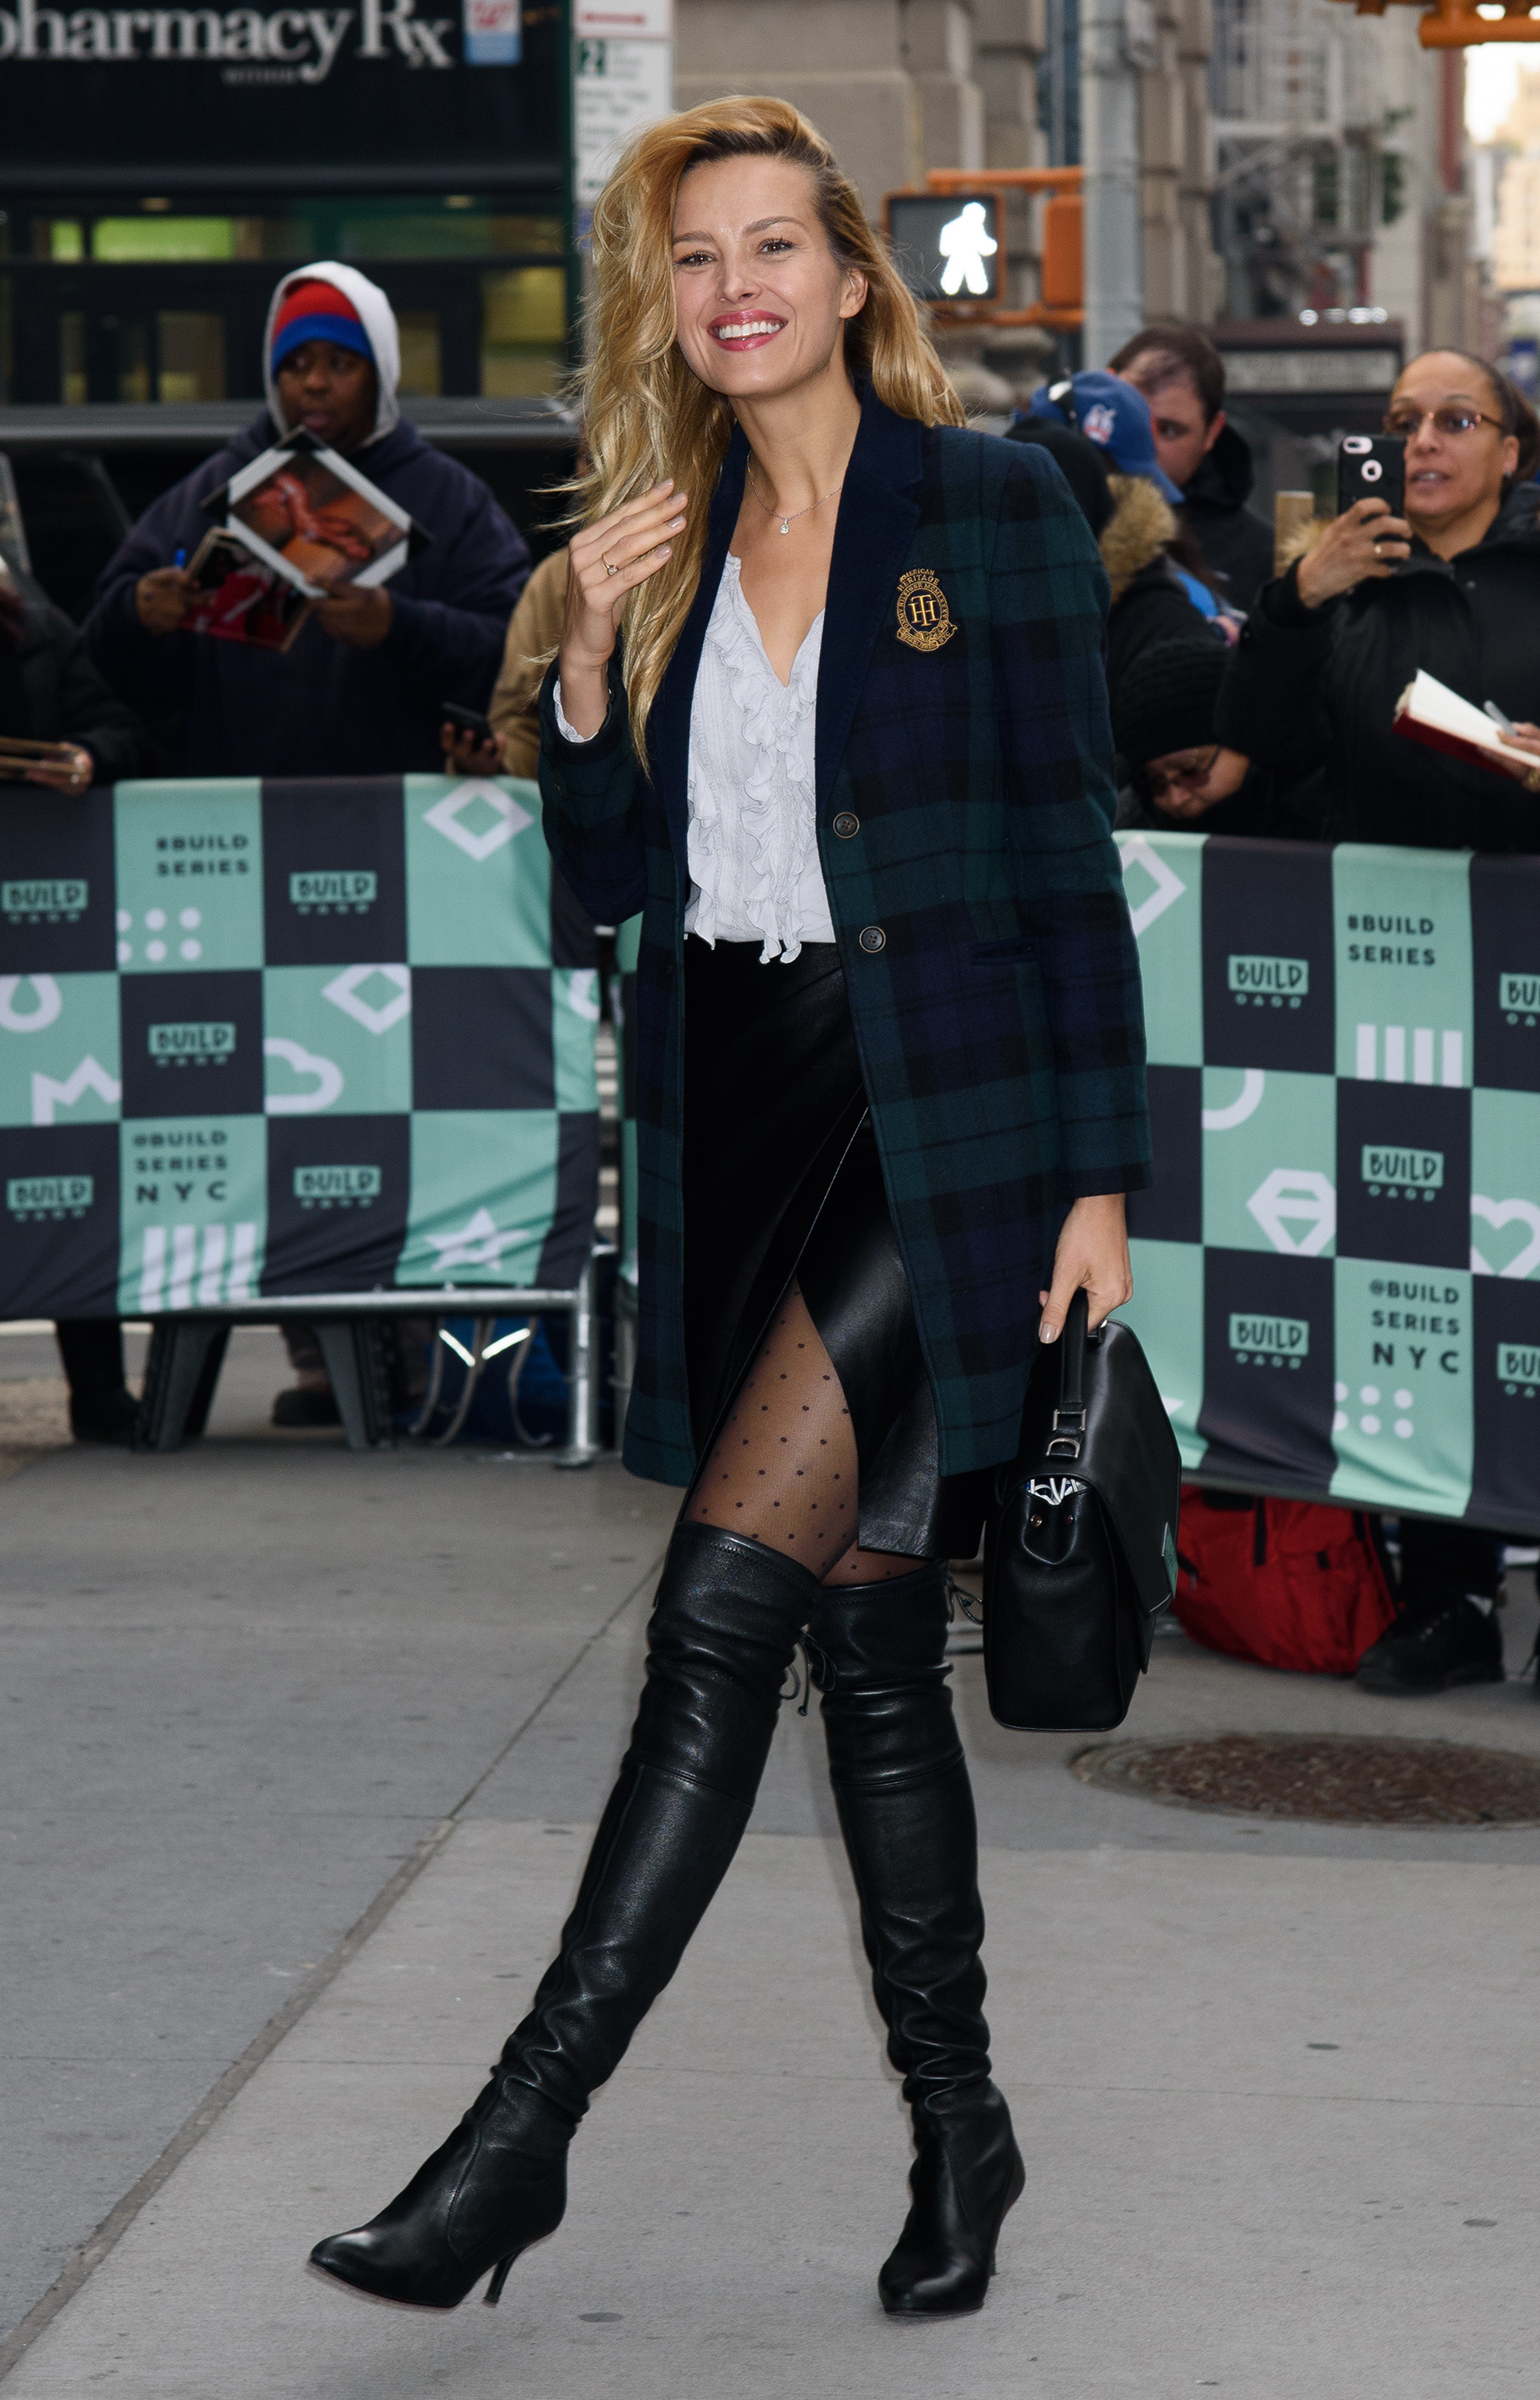 Celebrity Guests at AOL Build in NYC AOL Studio, NY <P> Pictured: Petra Nemcova <B>Ref: SPL1623067  141117  </B><BR/> Picture by: Janet Mayer / Splash News<BR/> </P><P> <B>Splash News and Pictures</B><BR/> Los Angeles:310-821-2666<BR/> New York:212-619-2666<BR/> London:870-934-2666<BR/> <span id=